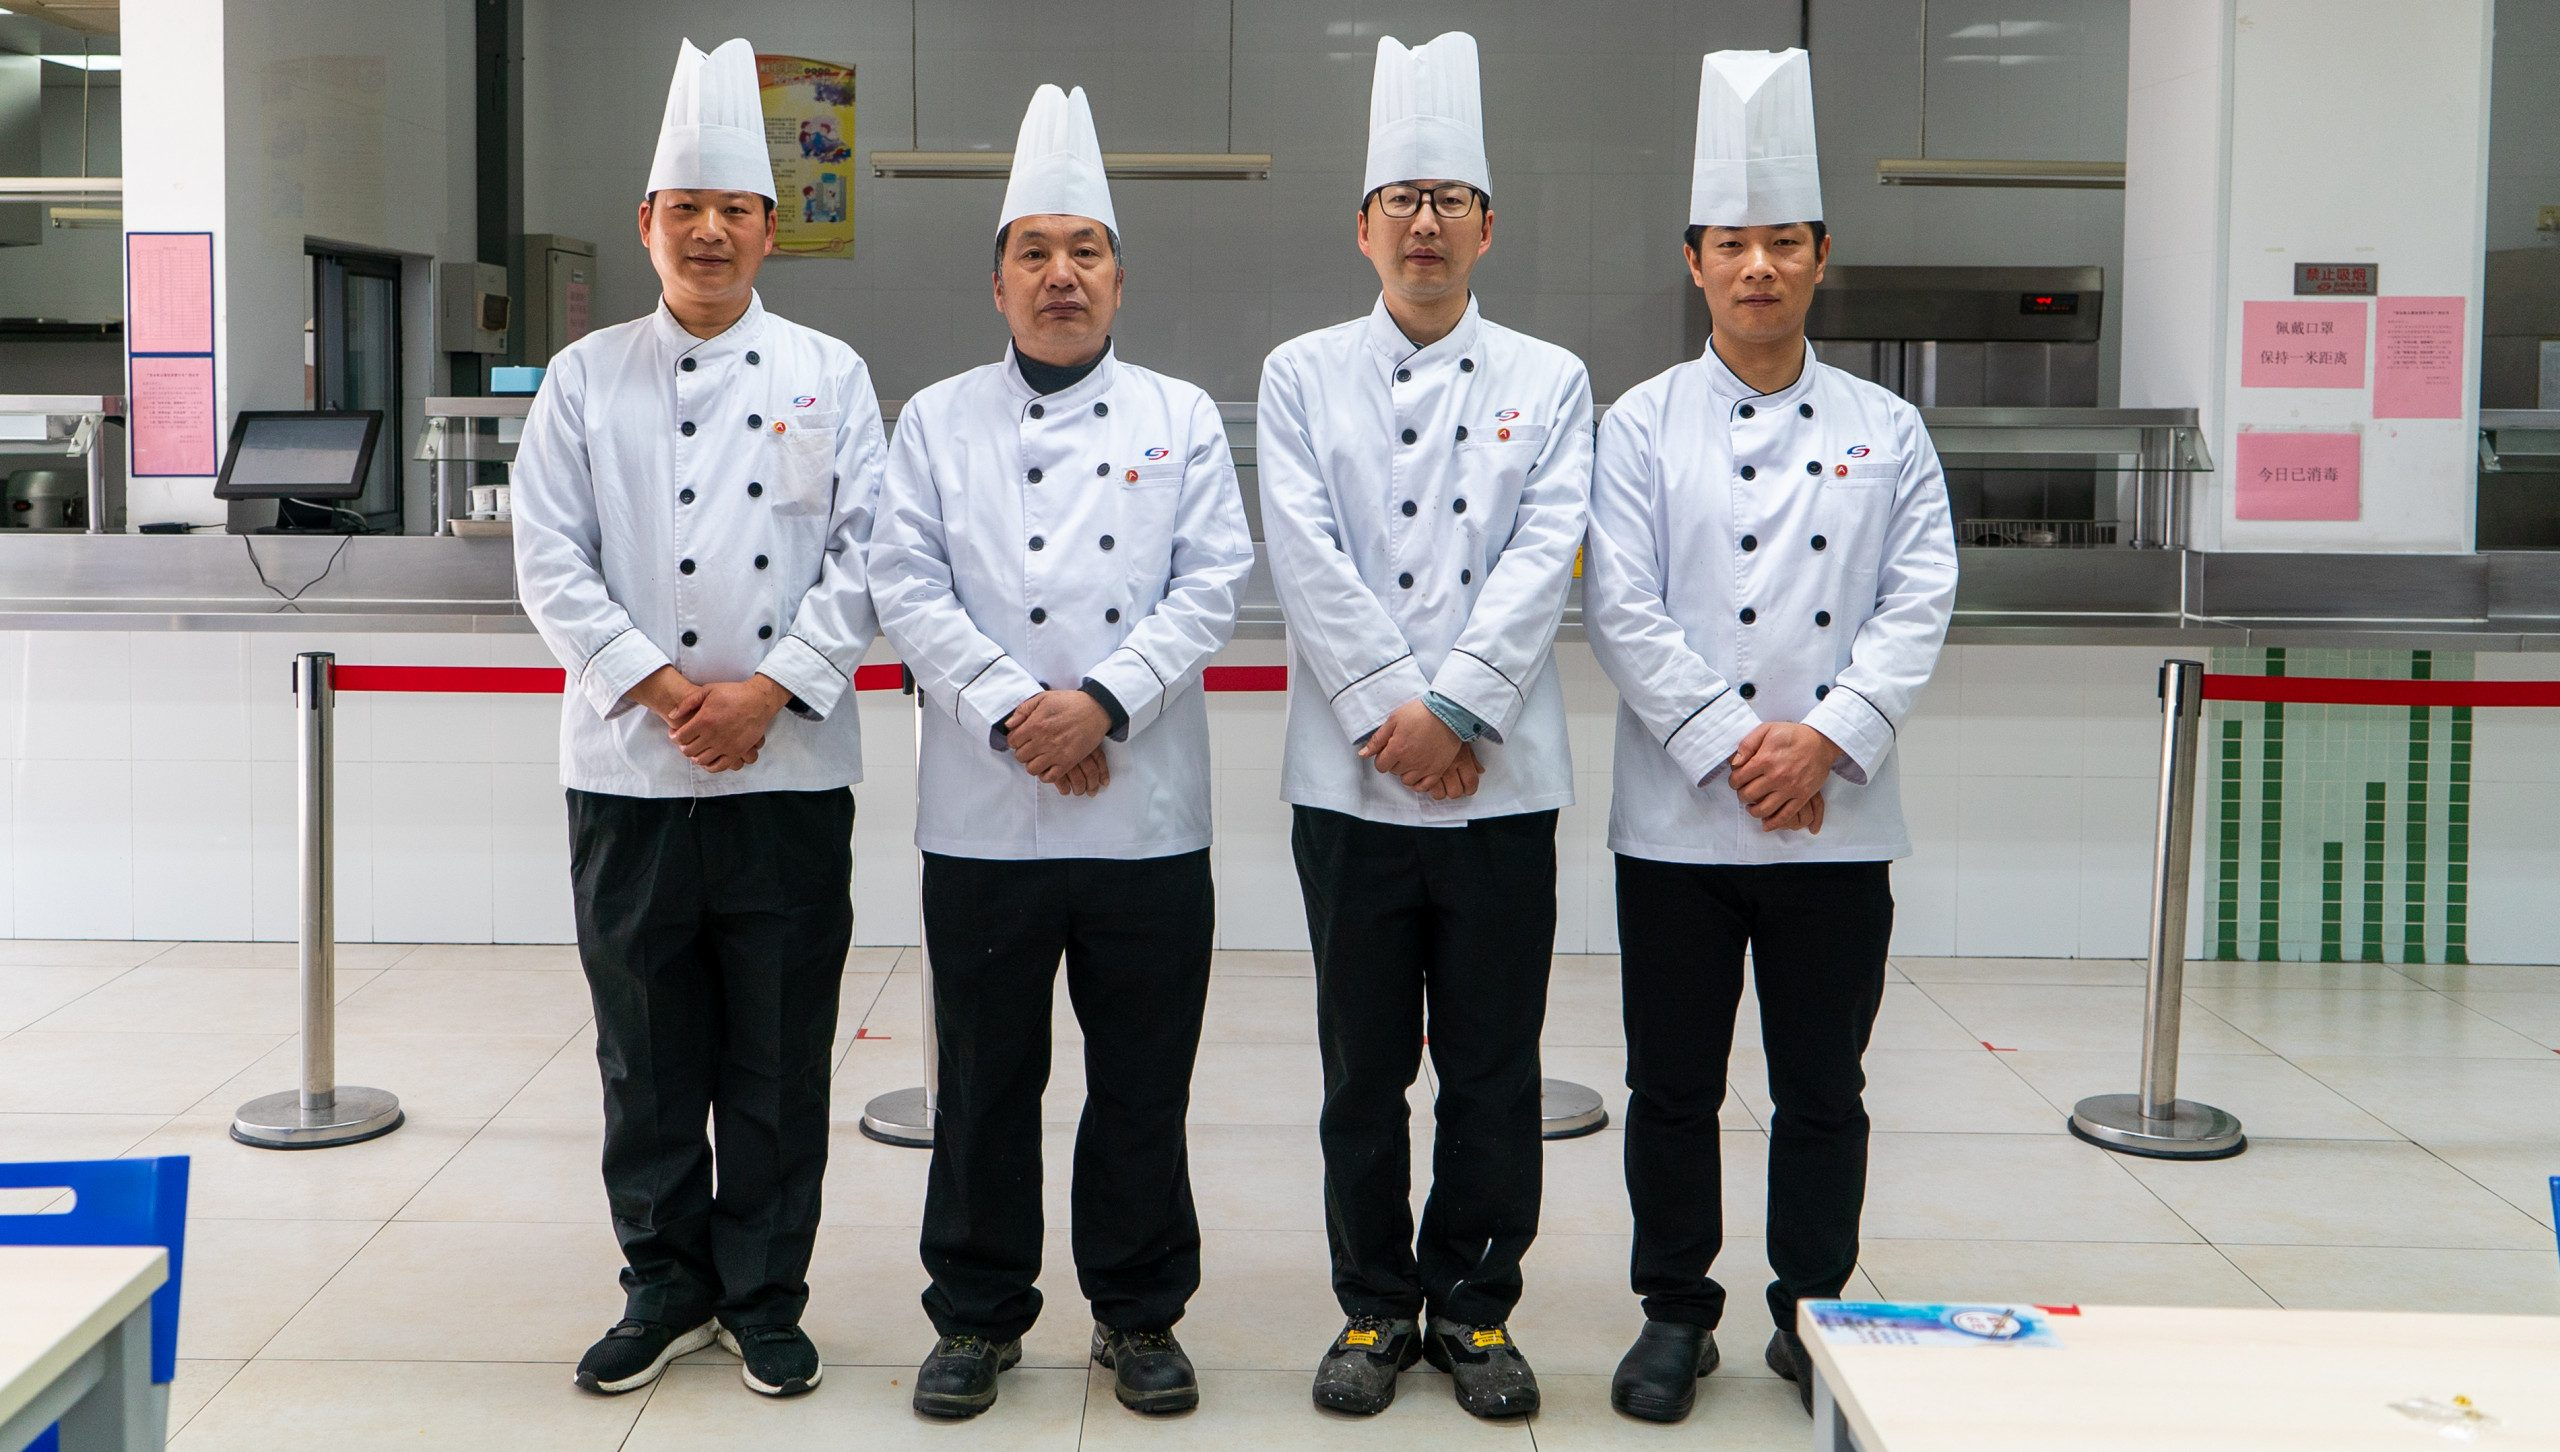 Aden Group IFM food service solution for Suzhou Rail Transit